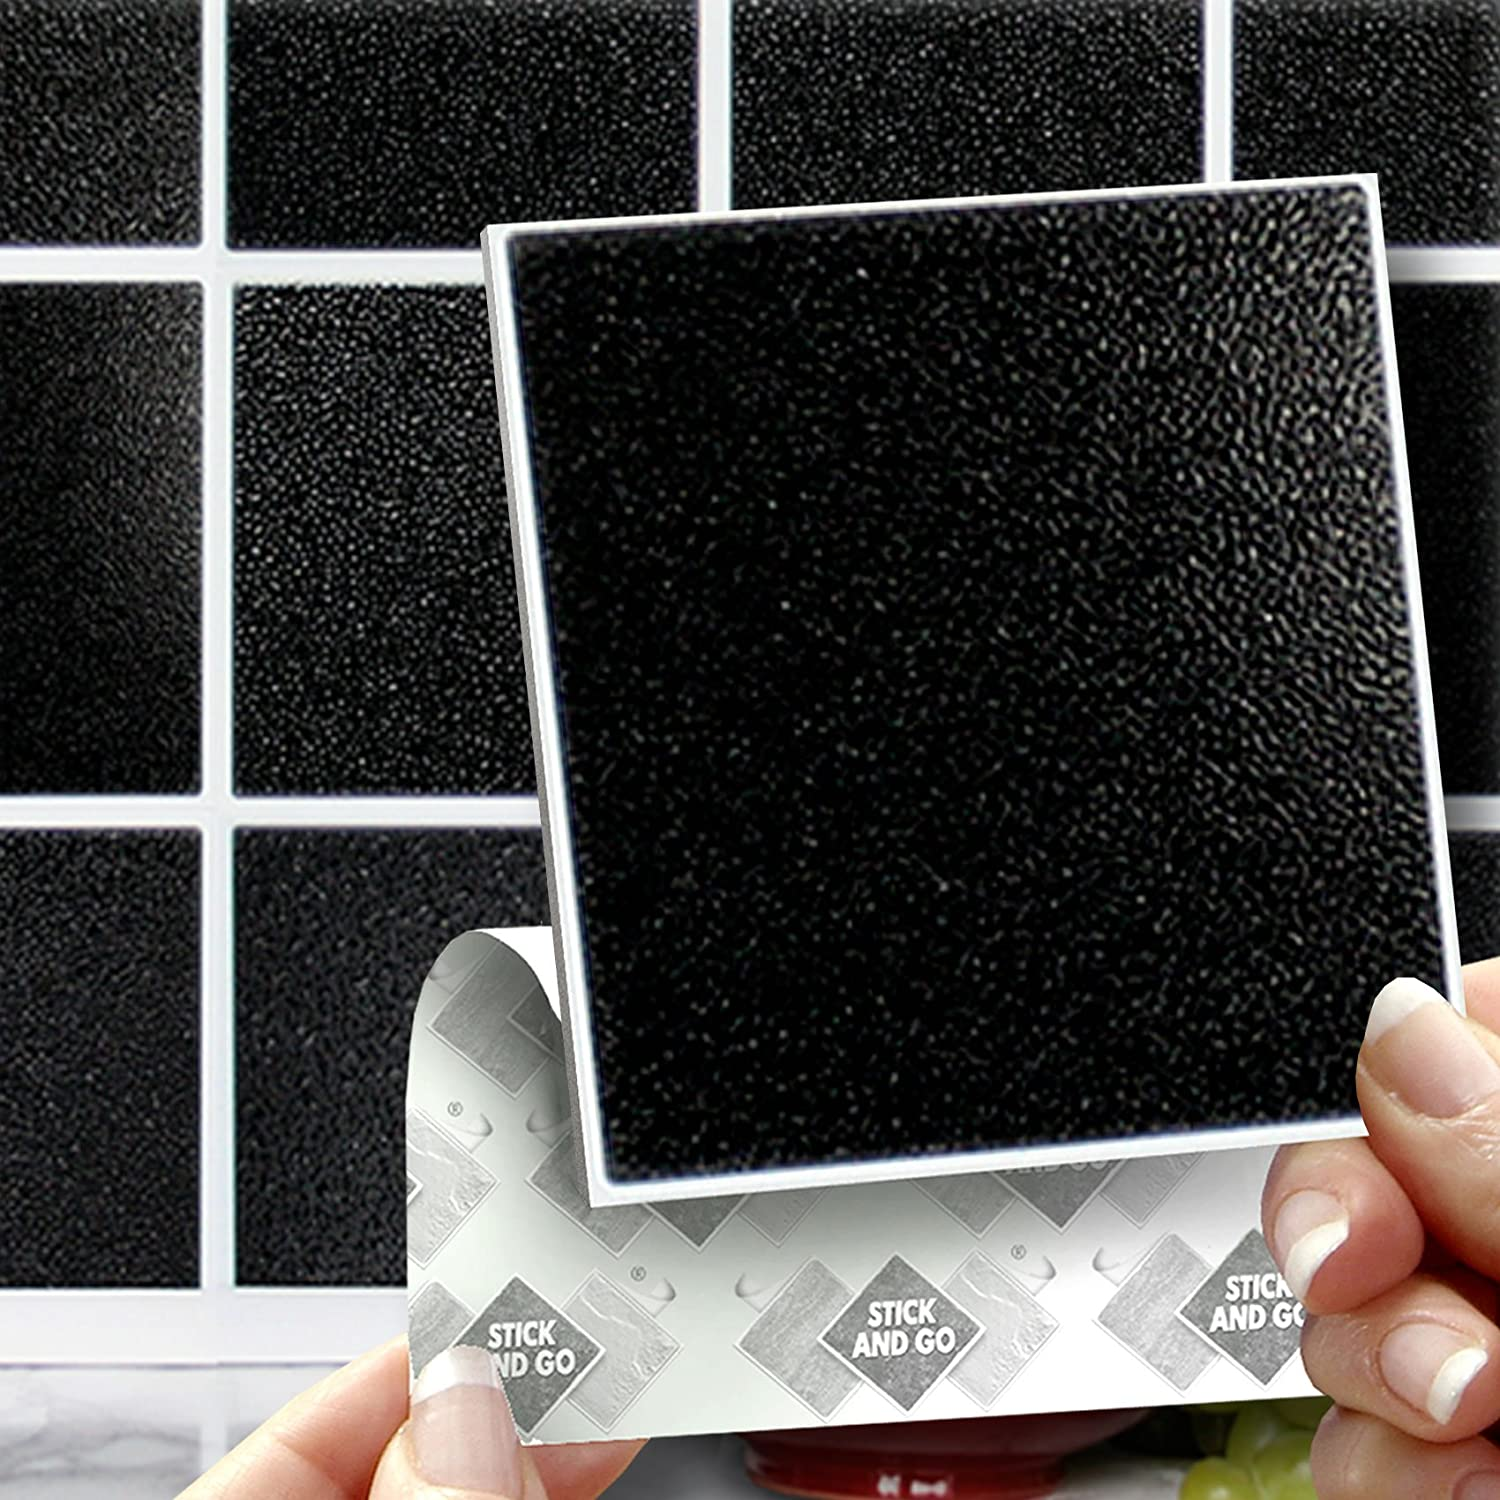 How to cover wall tiles - Black Effect Wall Tiles Box Of 8 Tiles Stick And Go Wall Tiles 6 X 6 15cm X 15cm Each Box Of Tiles Will Cover An Area Of 2 Sqr Ft